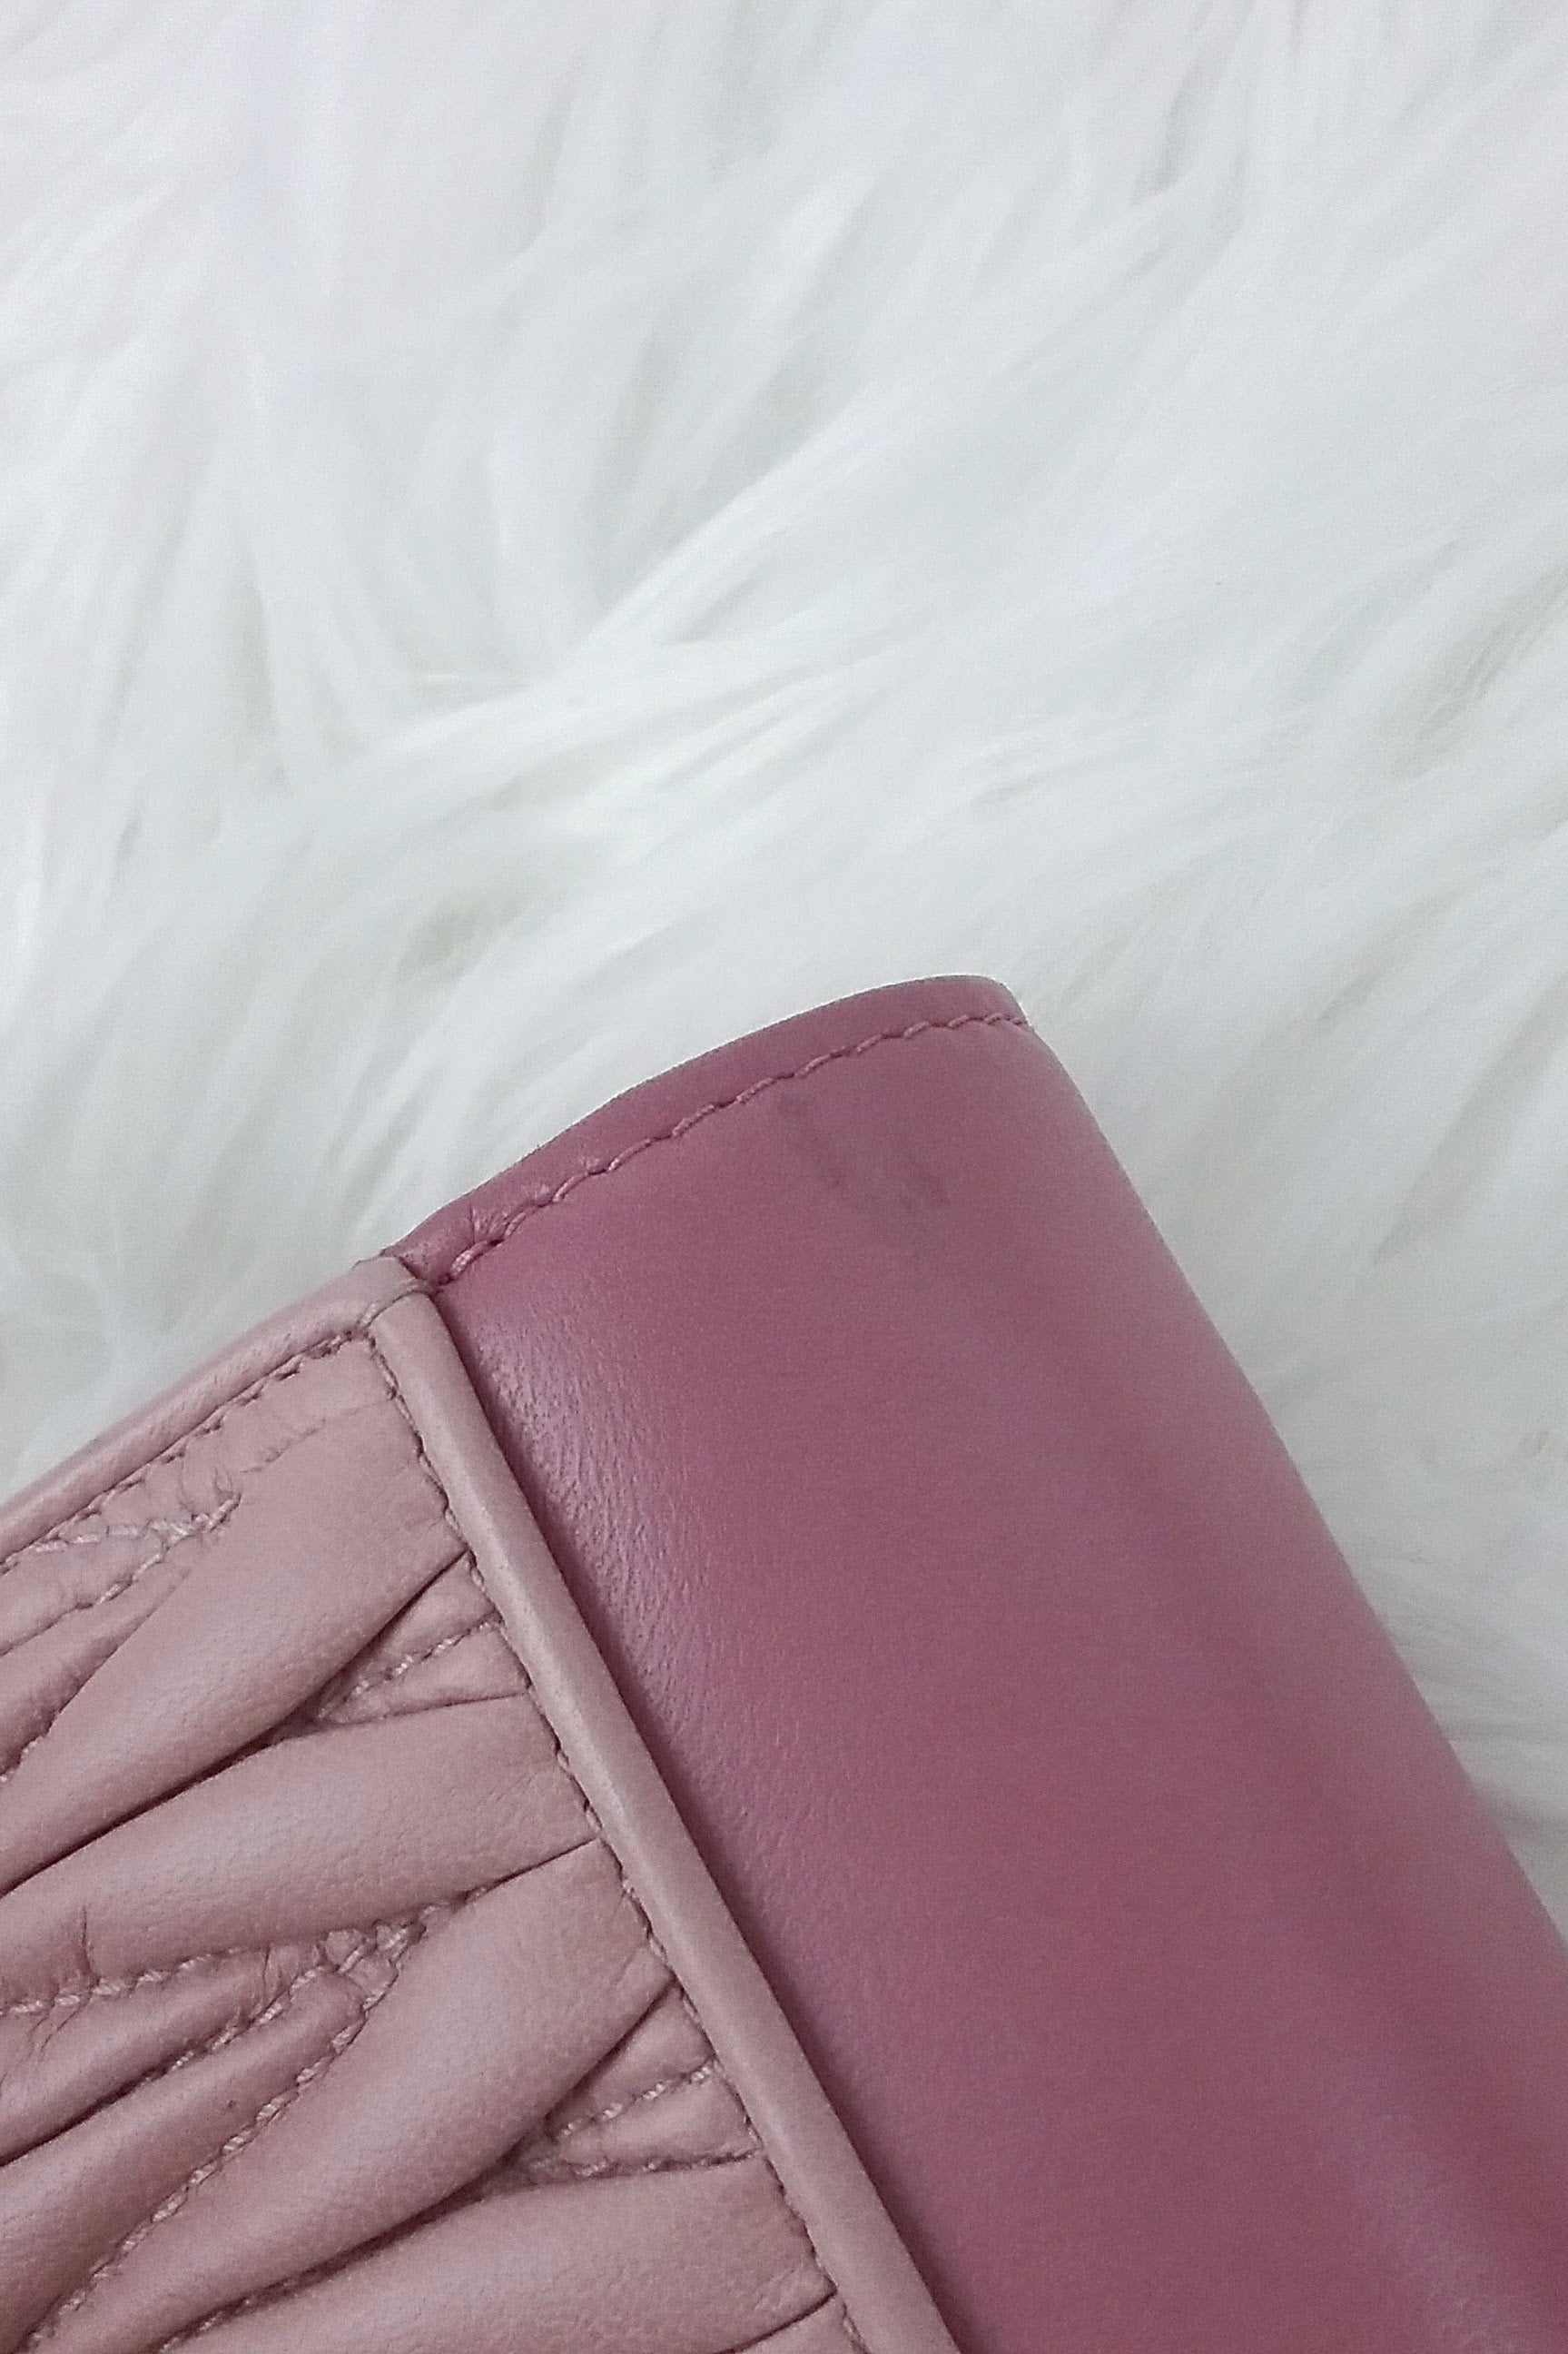 Nappa Matelasse Pink Rosa Mughetto WOC (Wallet On Chain)